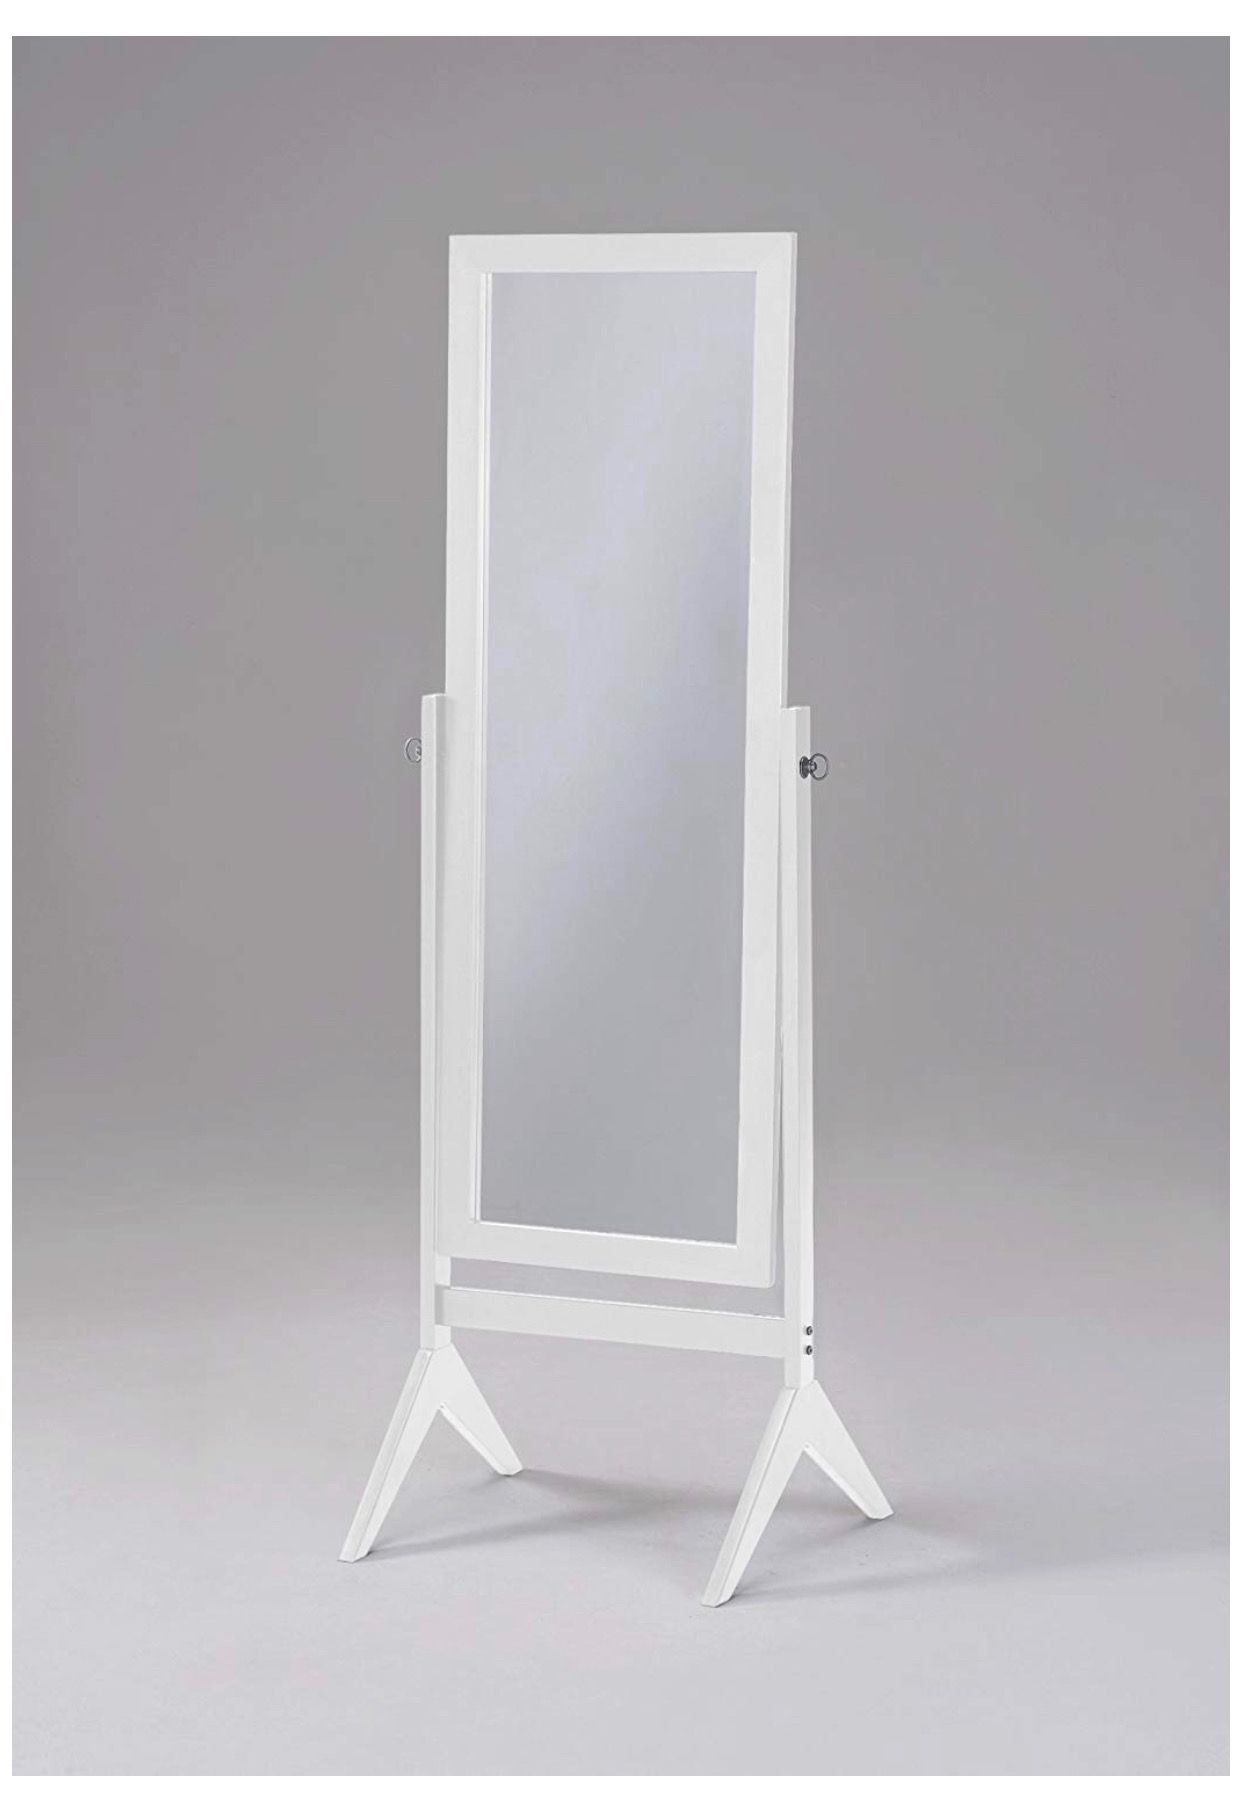 White Finish Wooden Cheval Bedroom Free Standing Floor Mirror Cheval White By Ehomeproducts Https Www Amazon Wooden Bedroom Floor Mirror Home Decor Mirrors